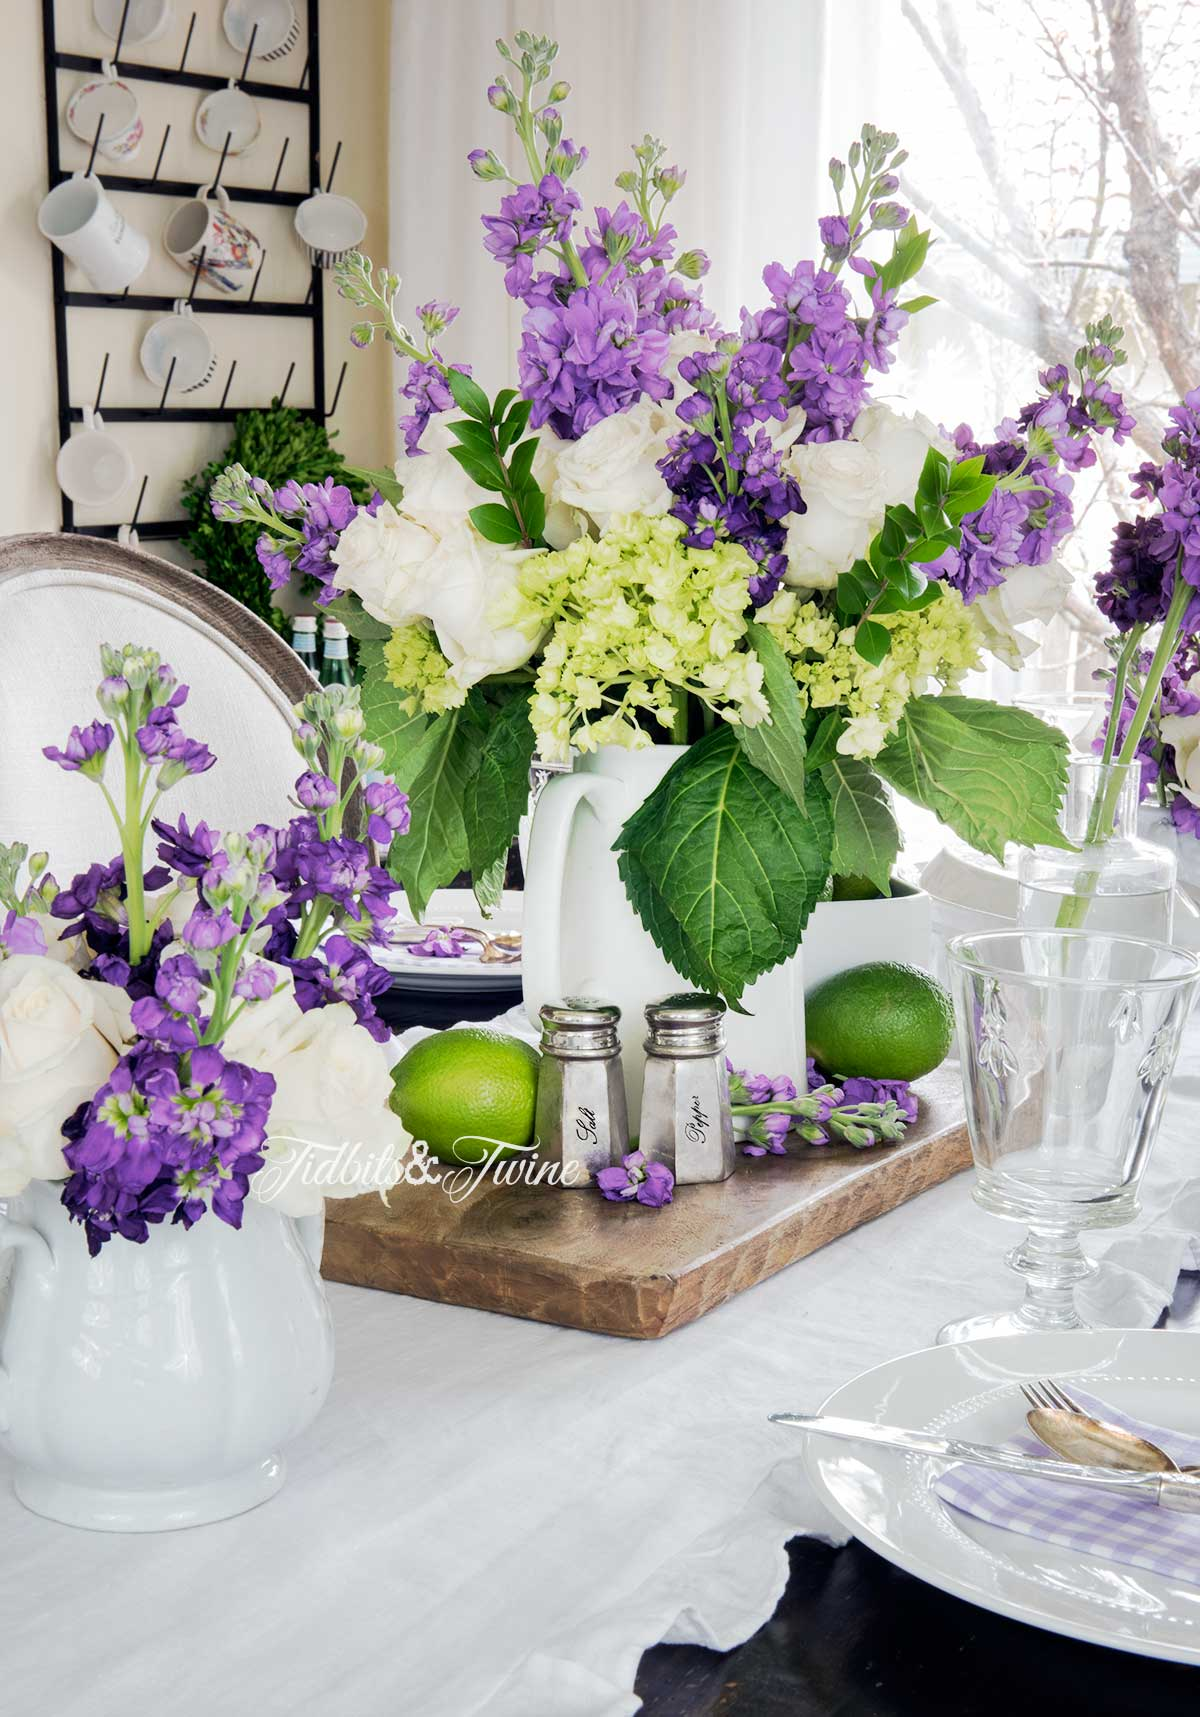 Purple white and green flower centerpiece on a bread board with limes